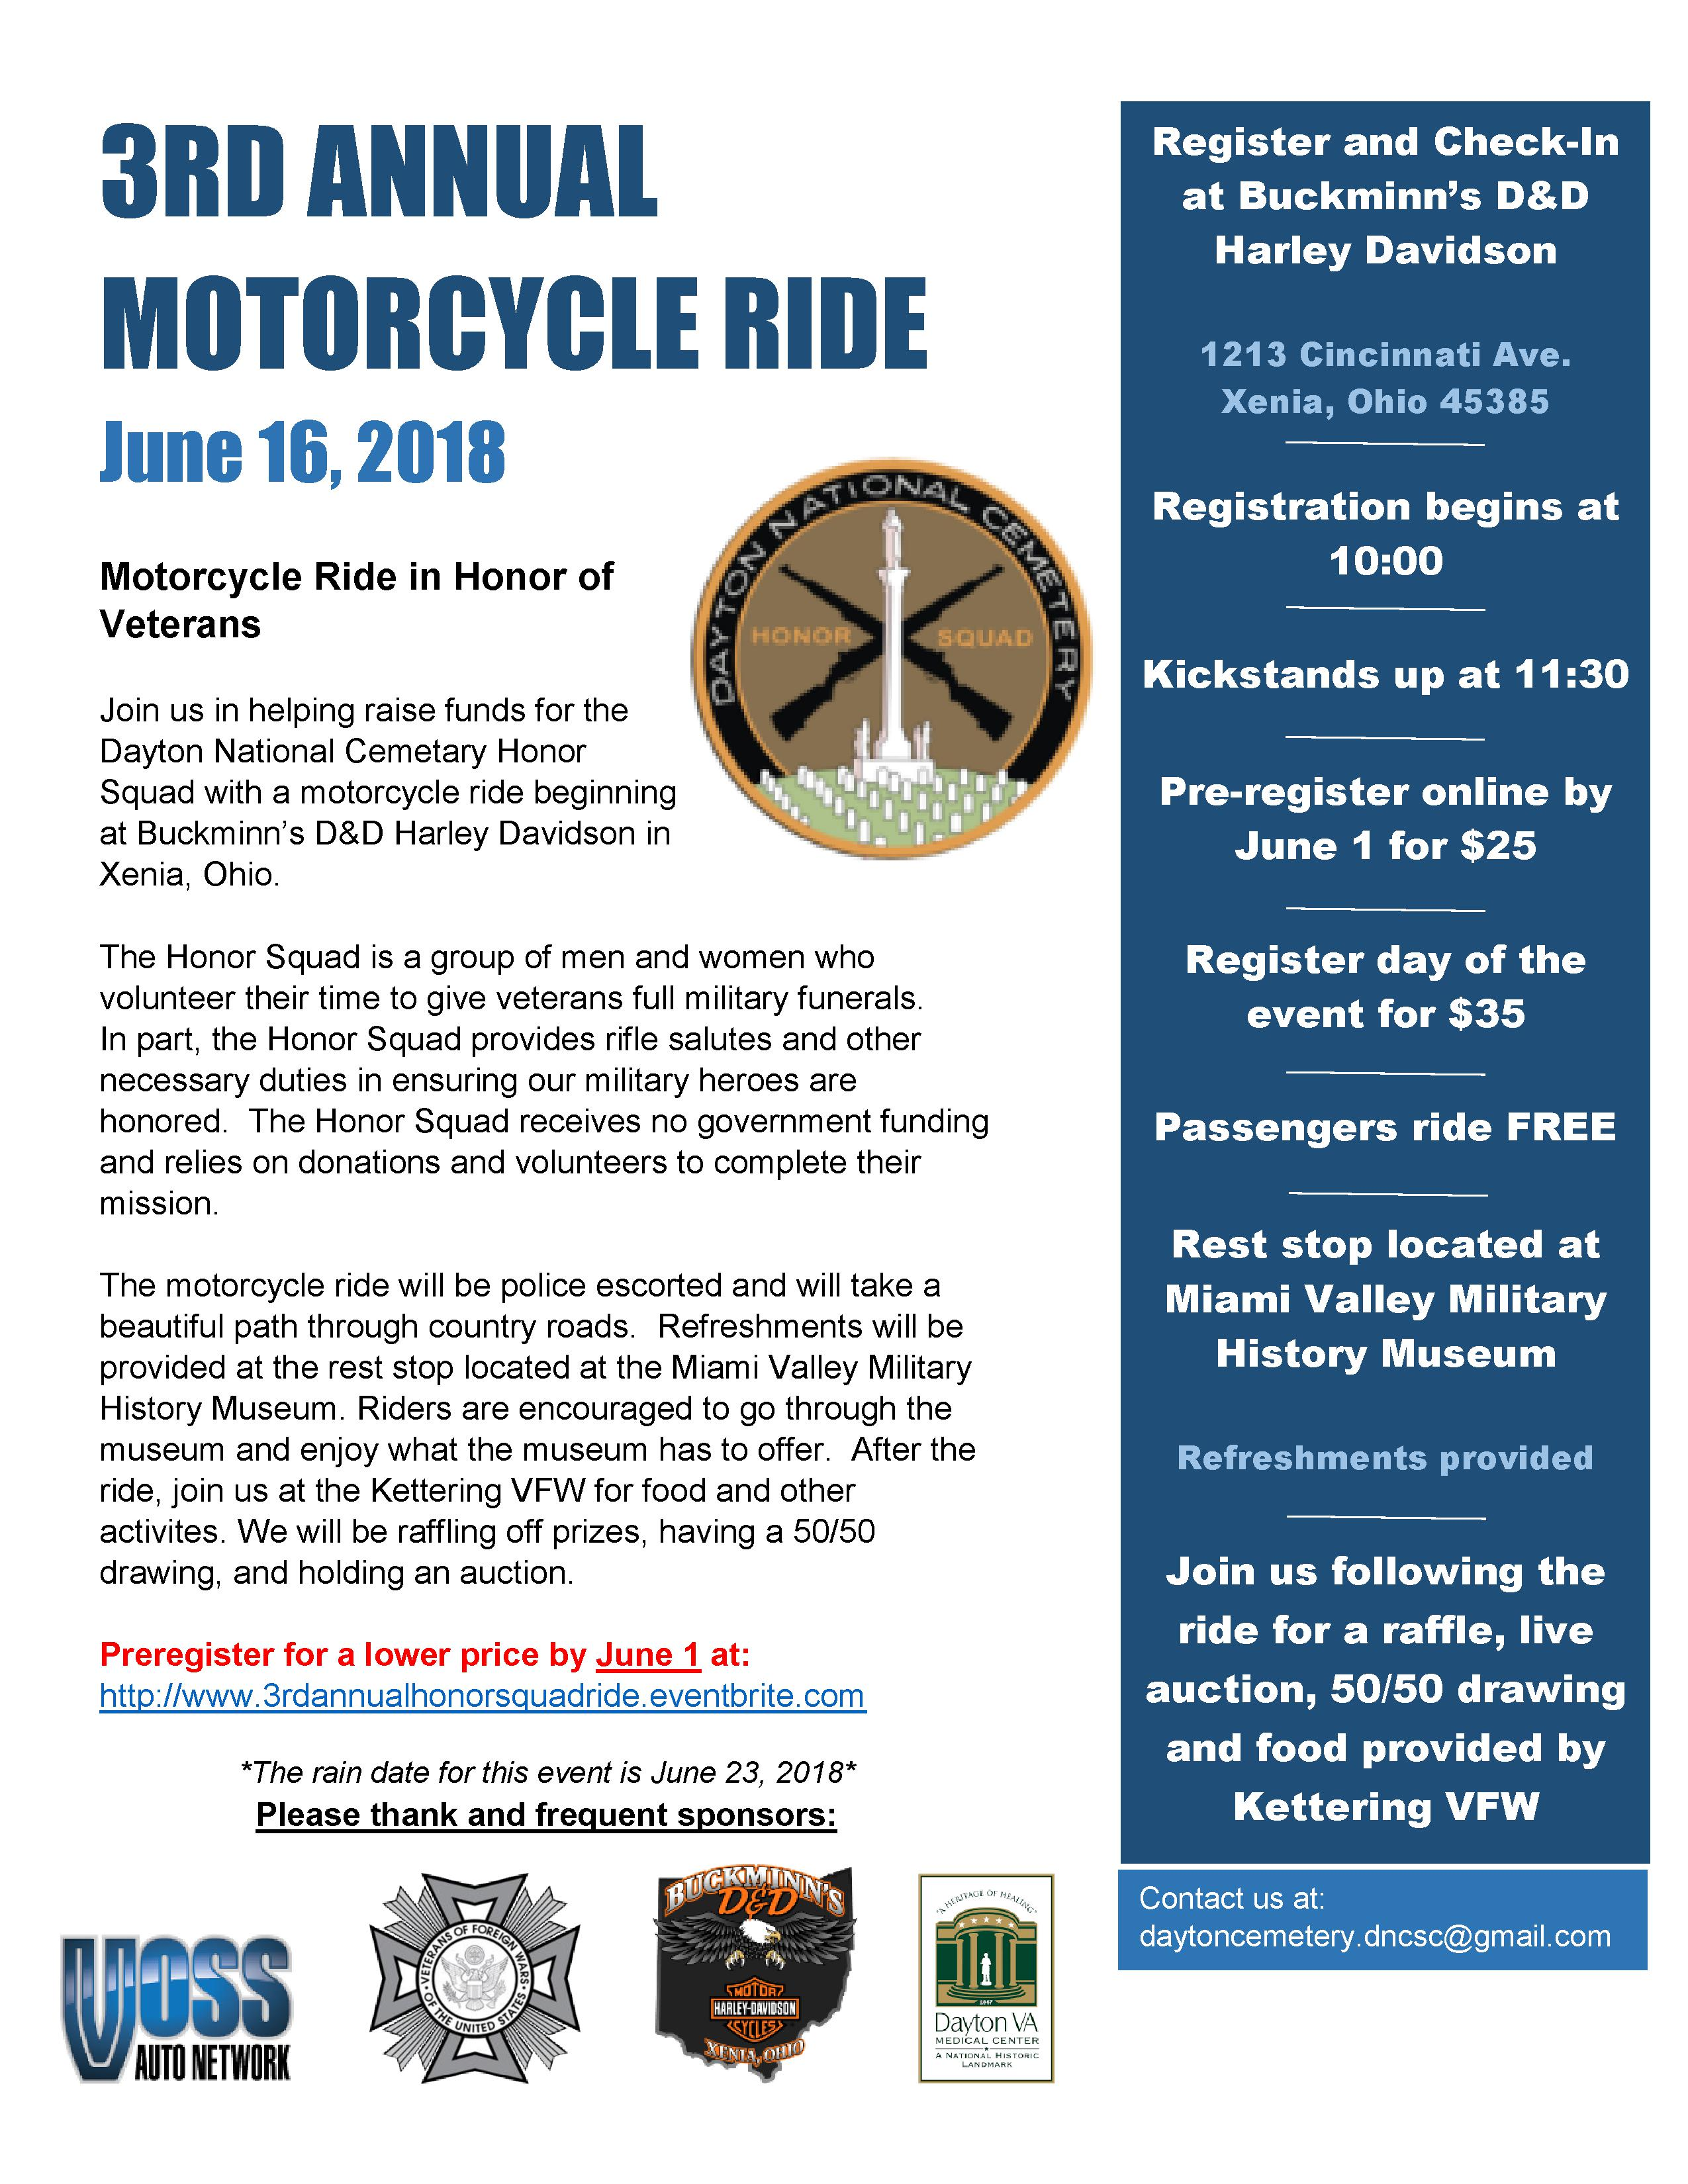 Third Annual Motorcycle Ride Flyer